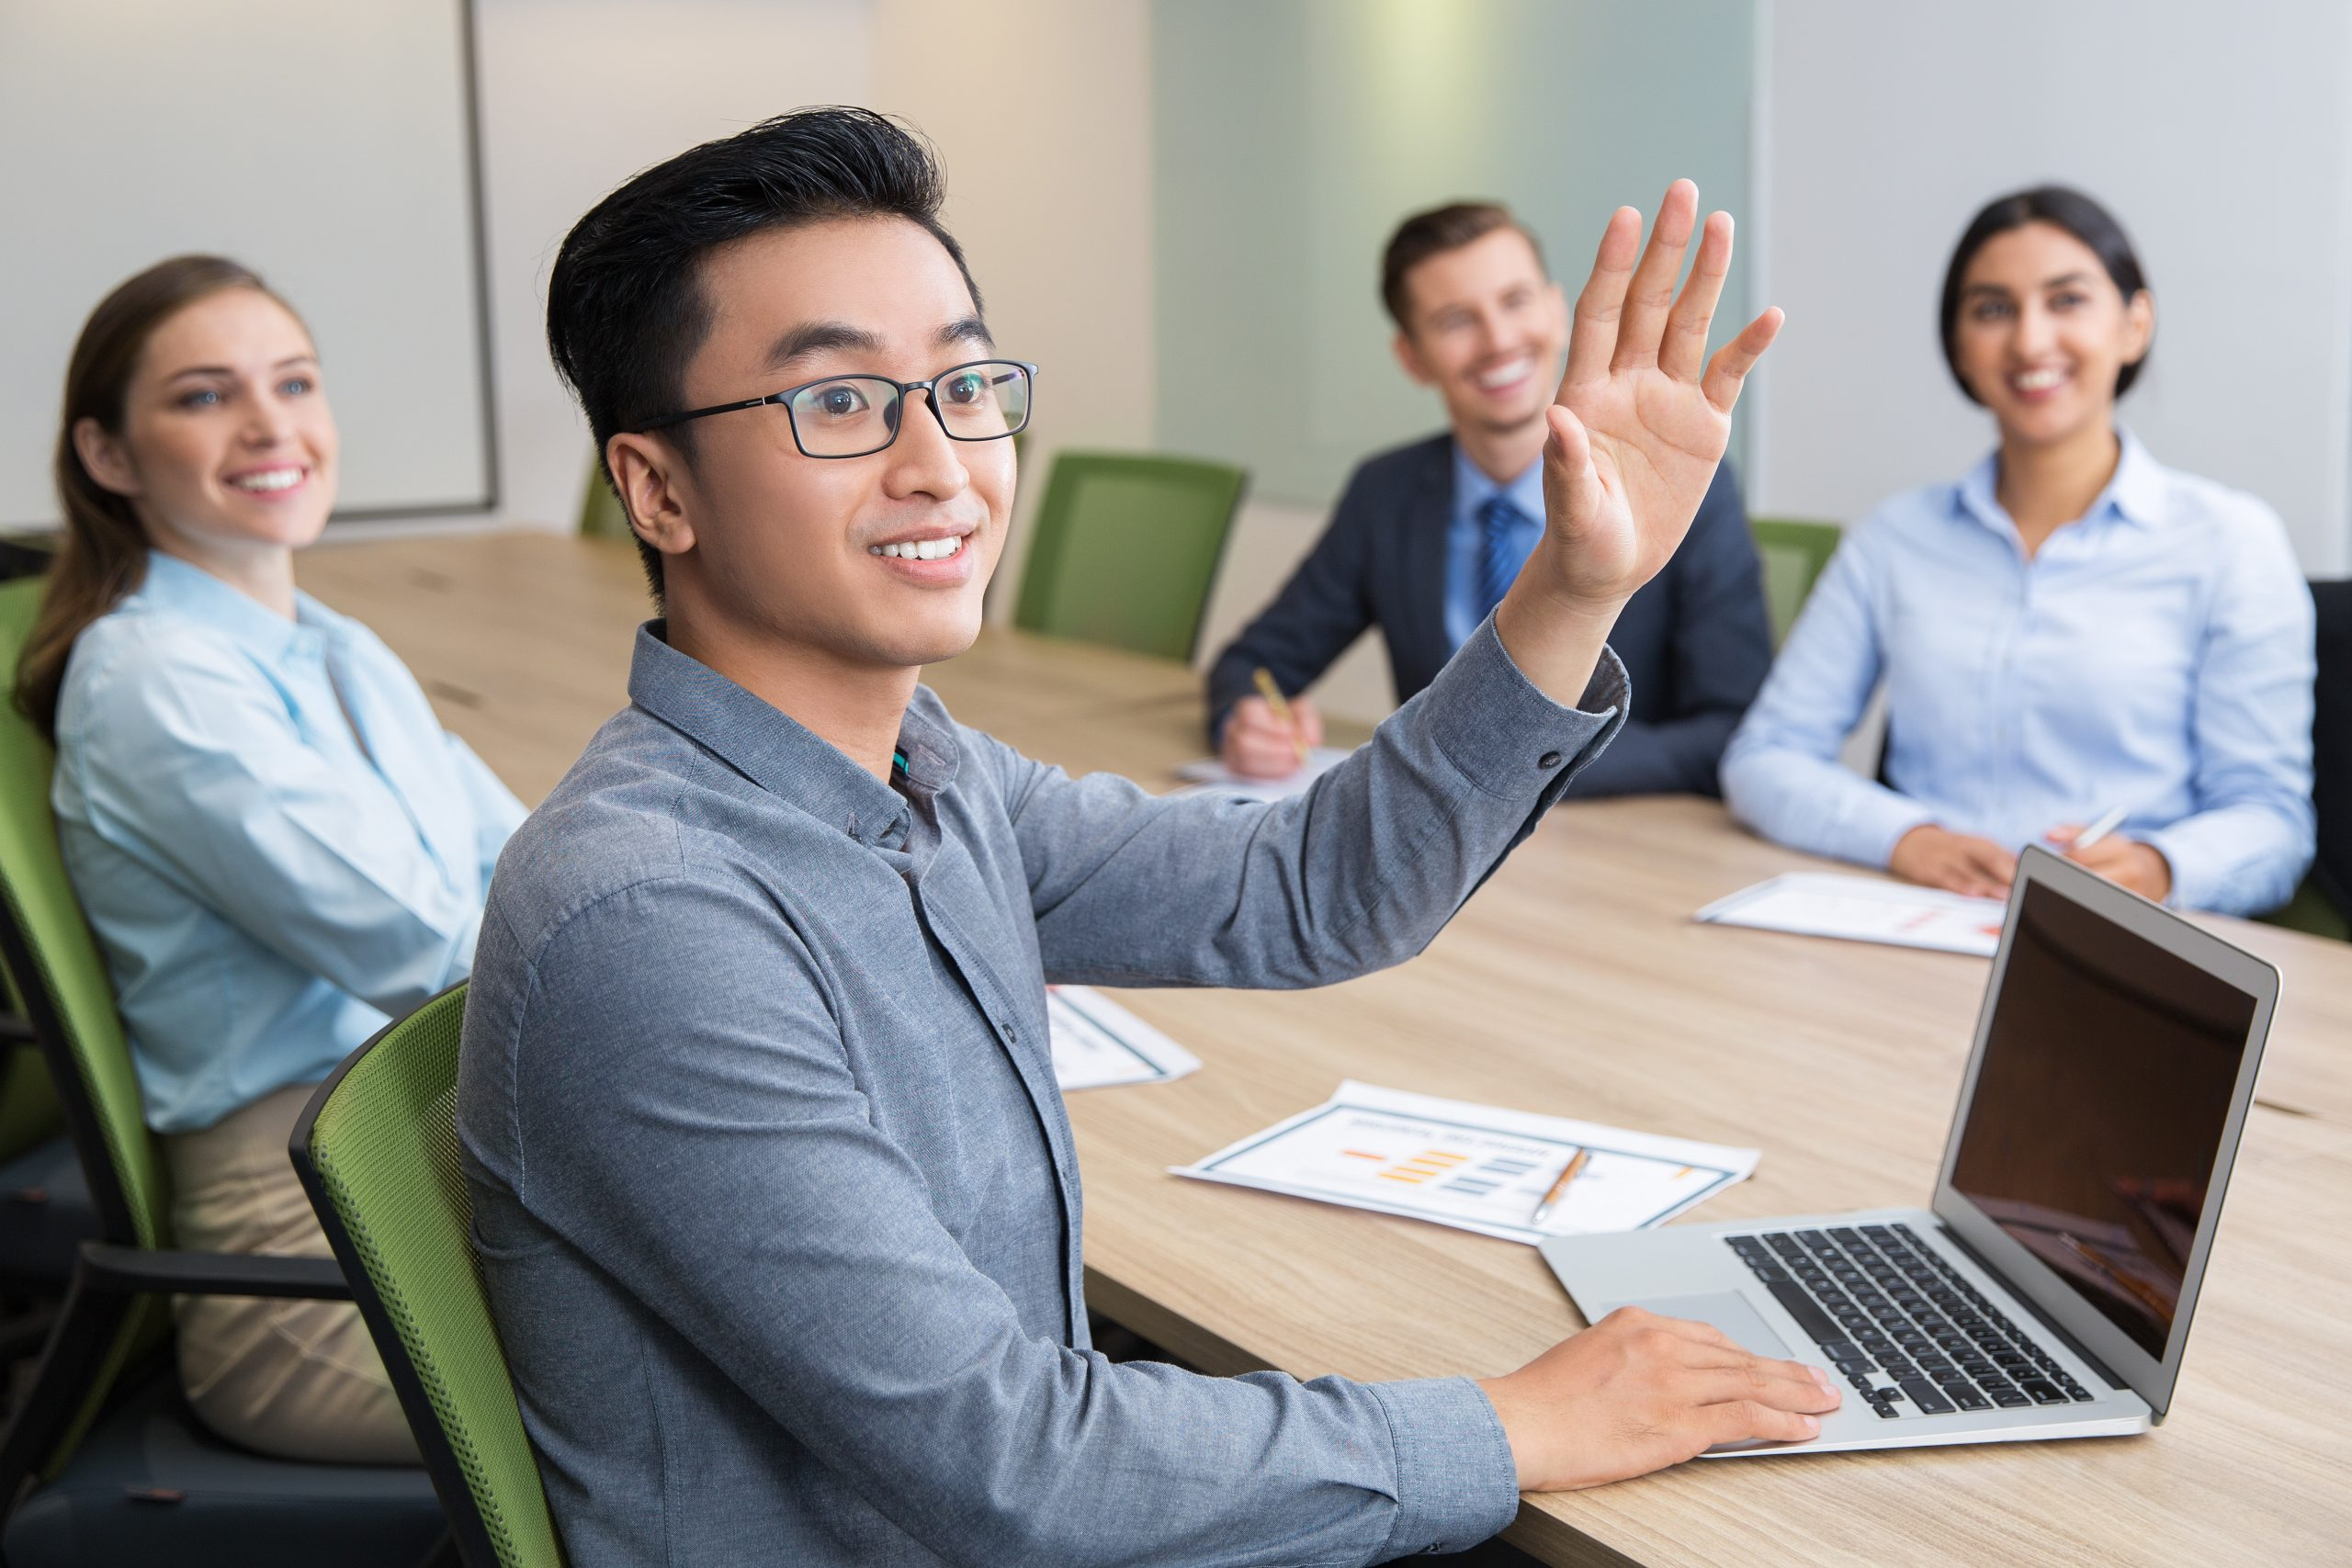 Management Skills to Advance Your Career